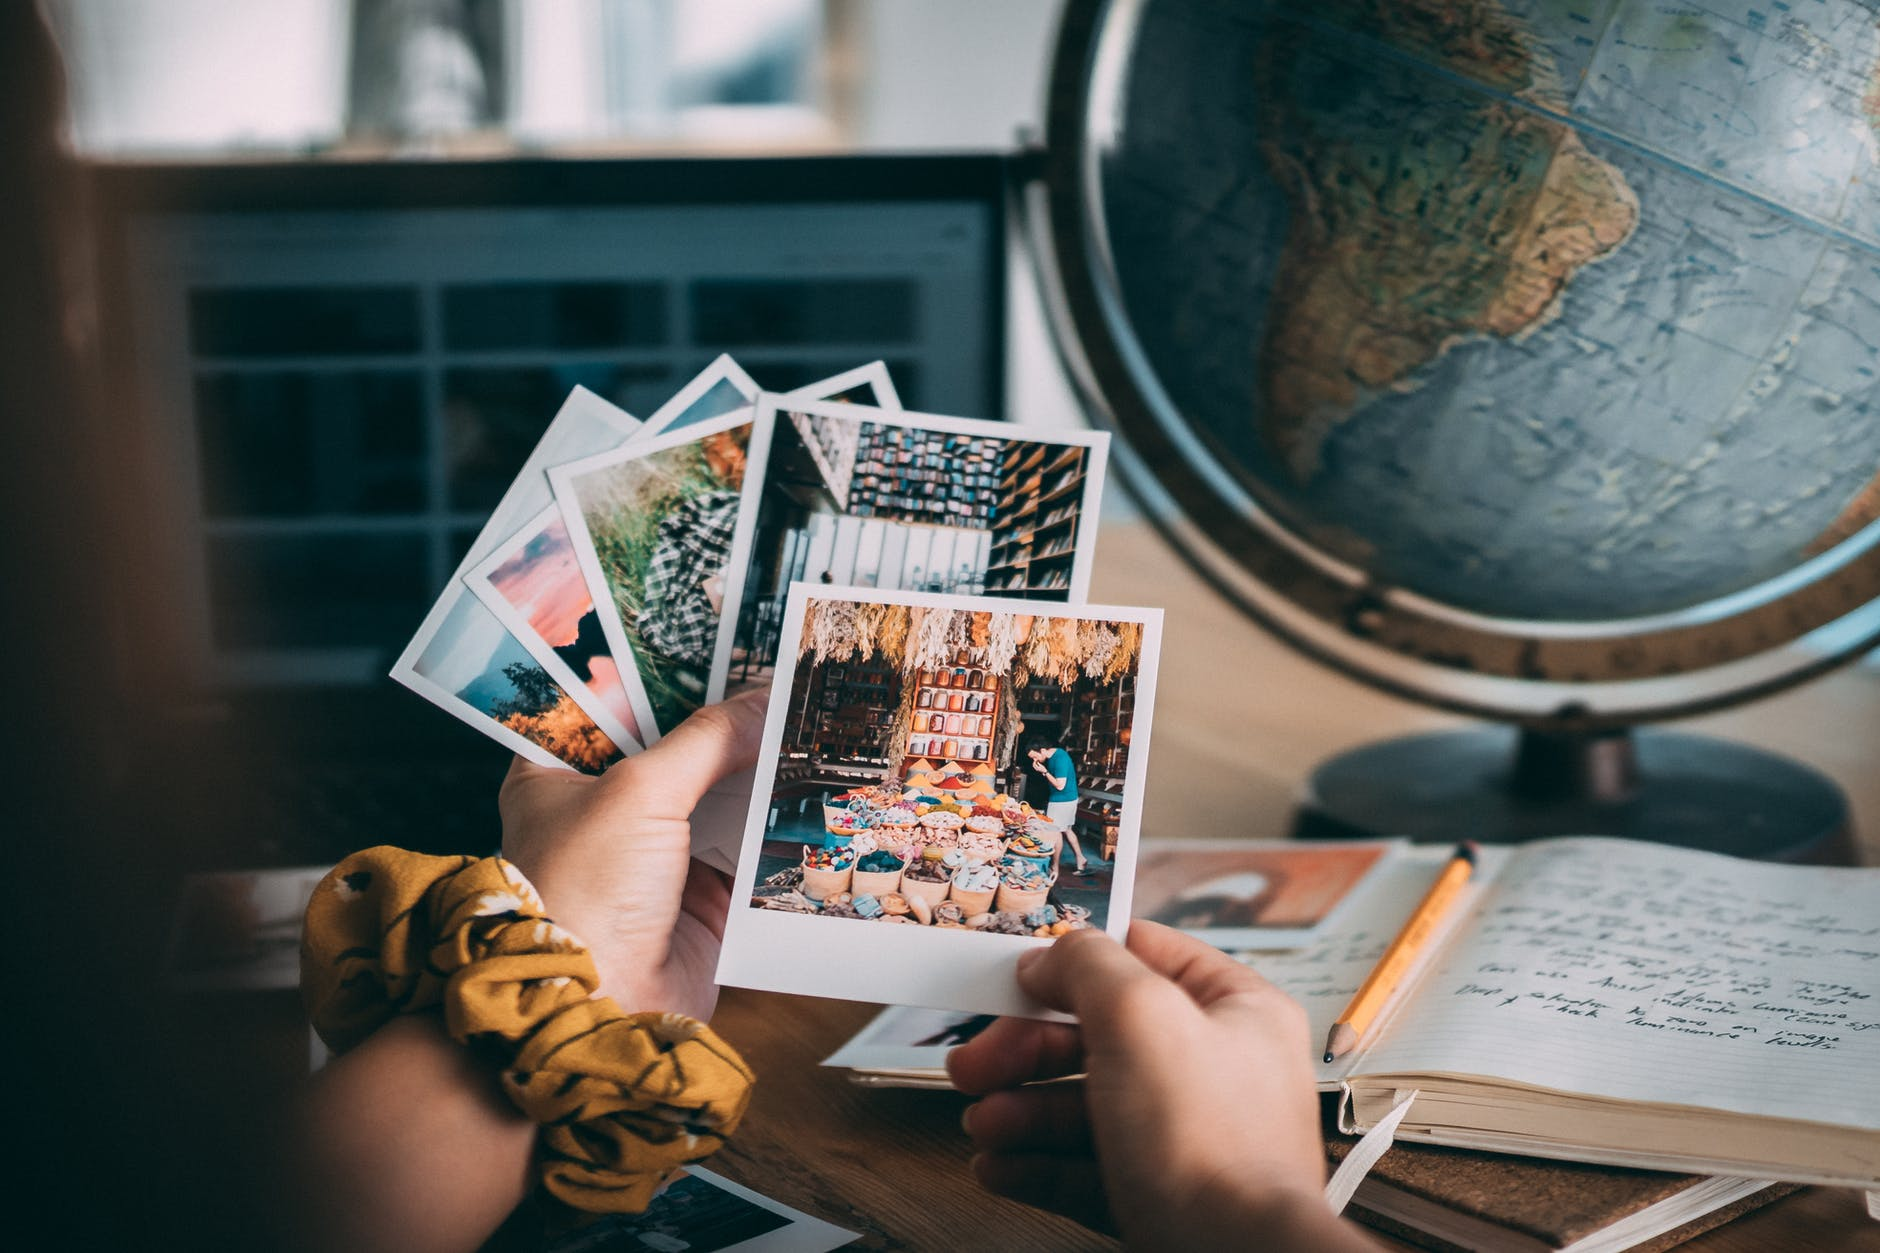 Millennial looking at old polaroid photos to reminisce on the past